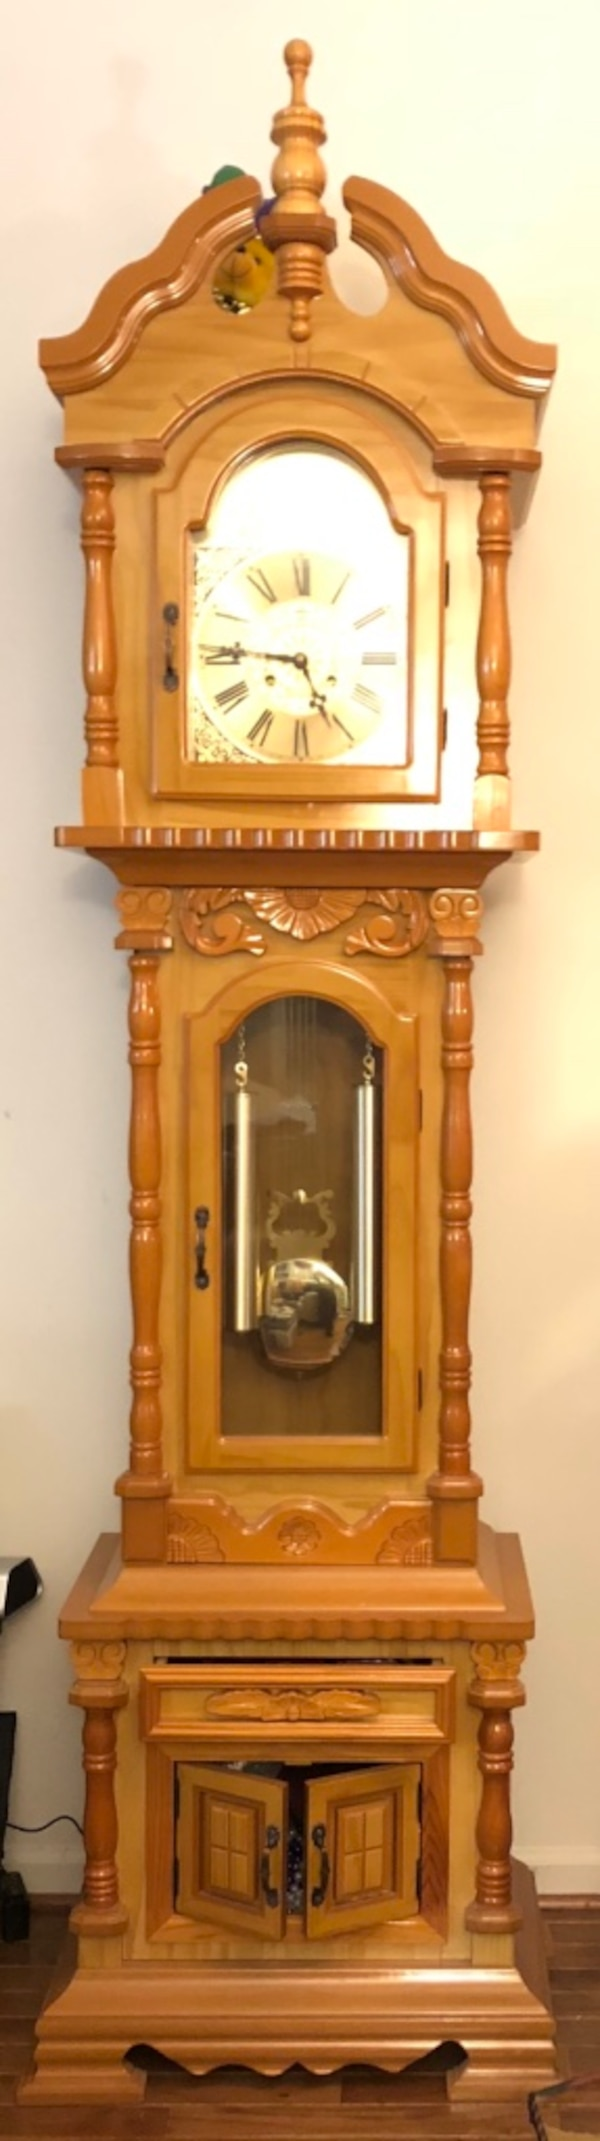 Grandfather clock for sale